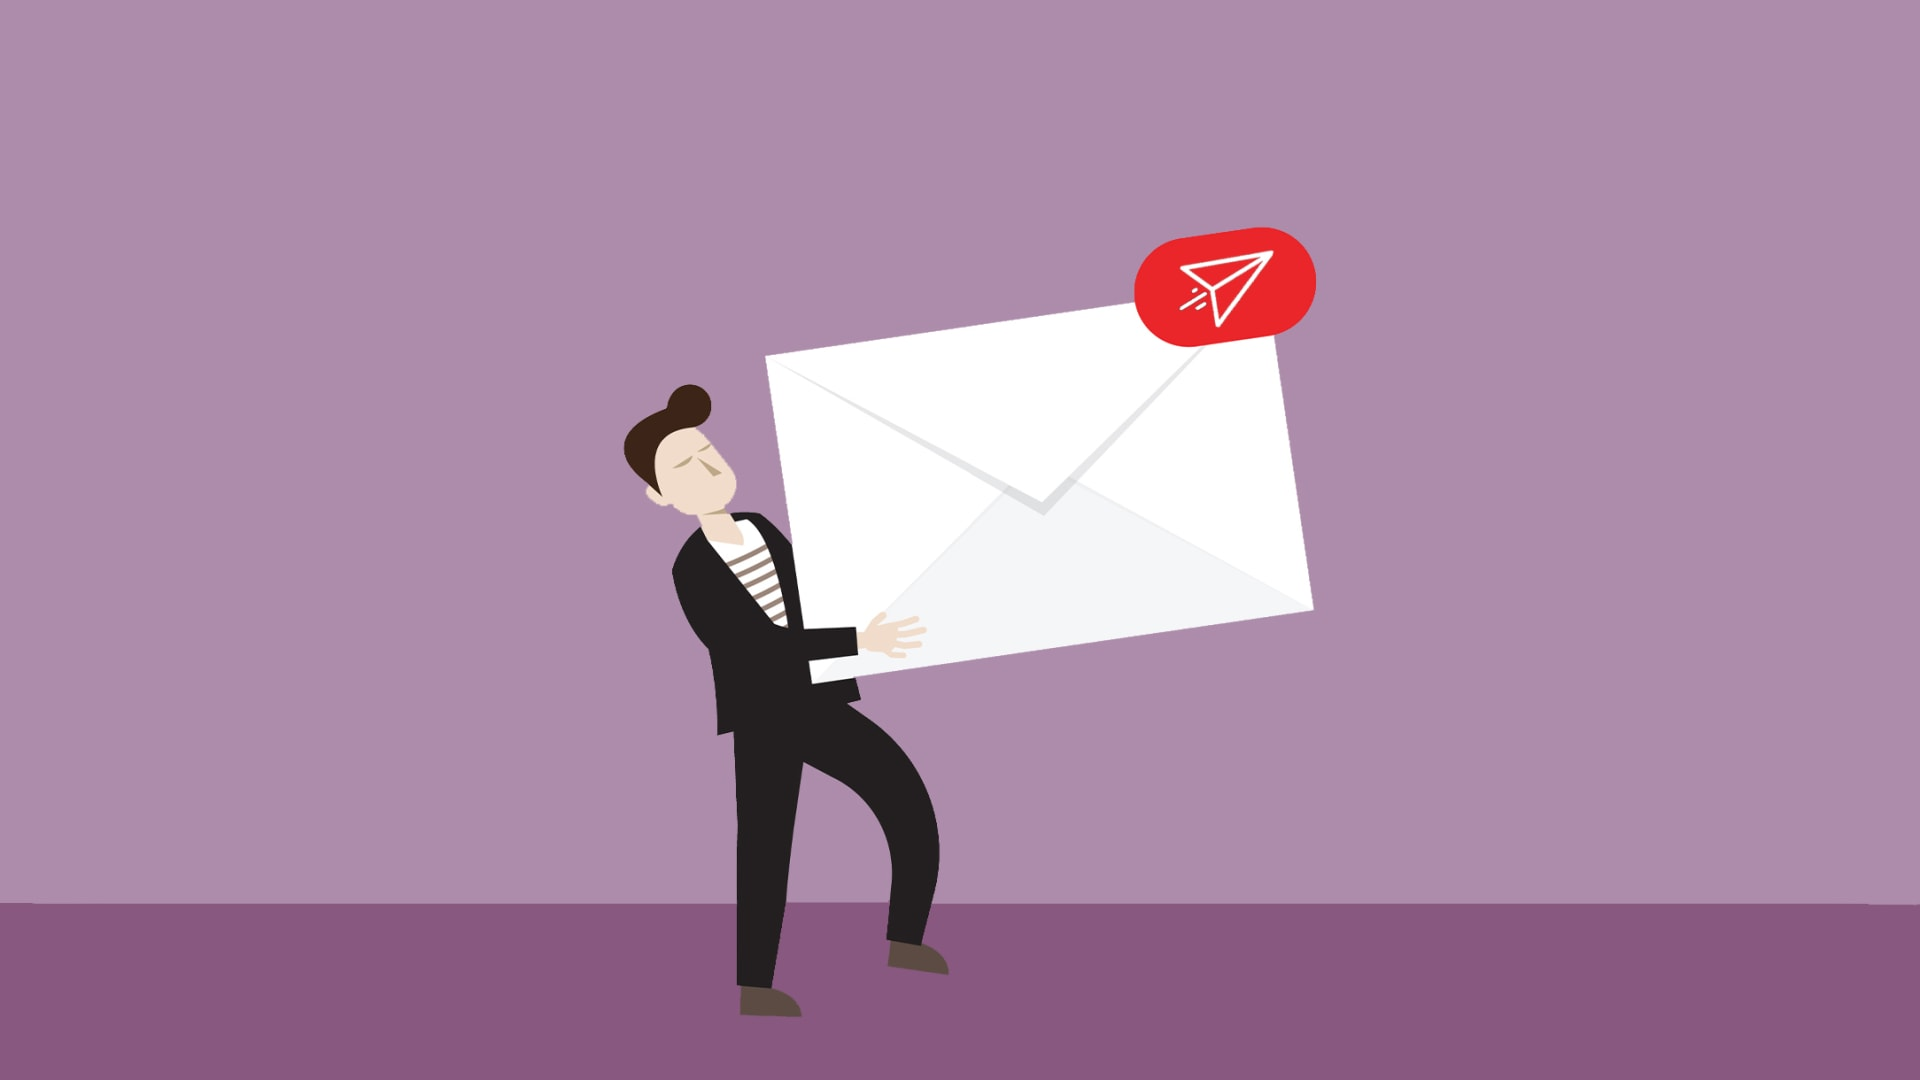 5 Words That Make Your Emails Sound Indecisive and Wishy-Washy